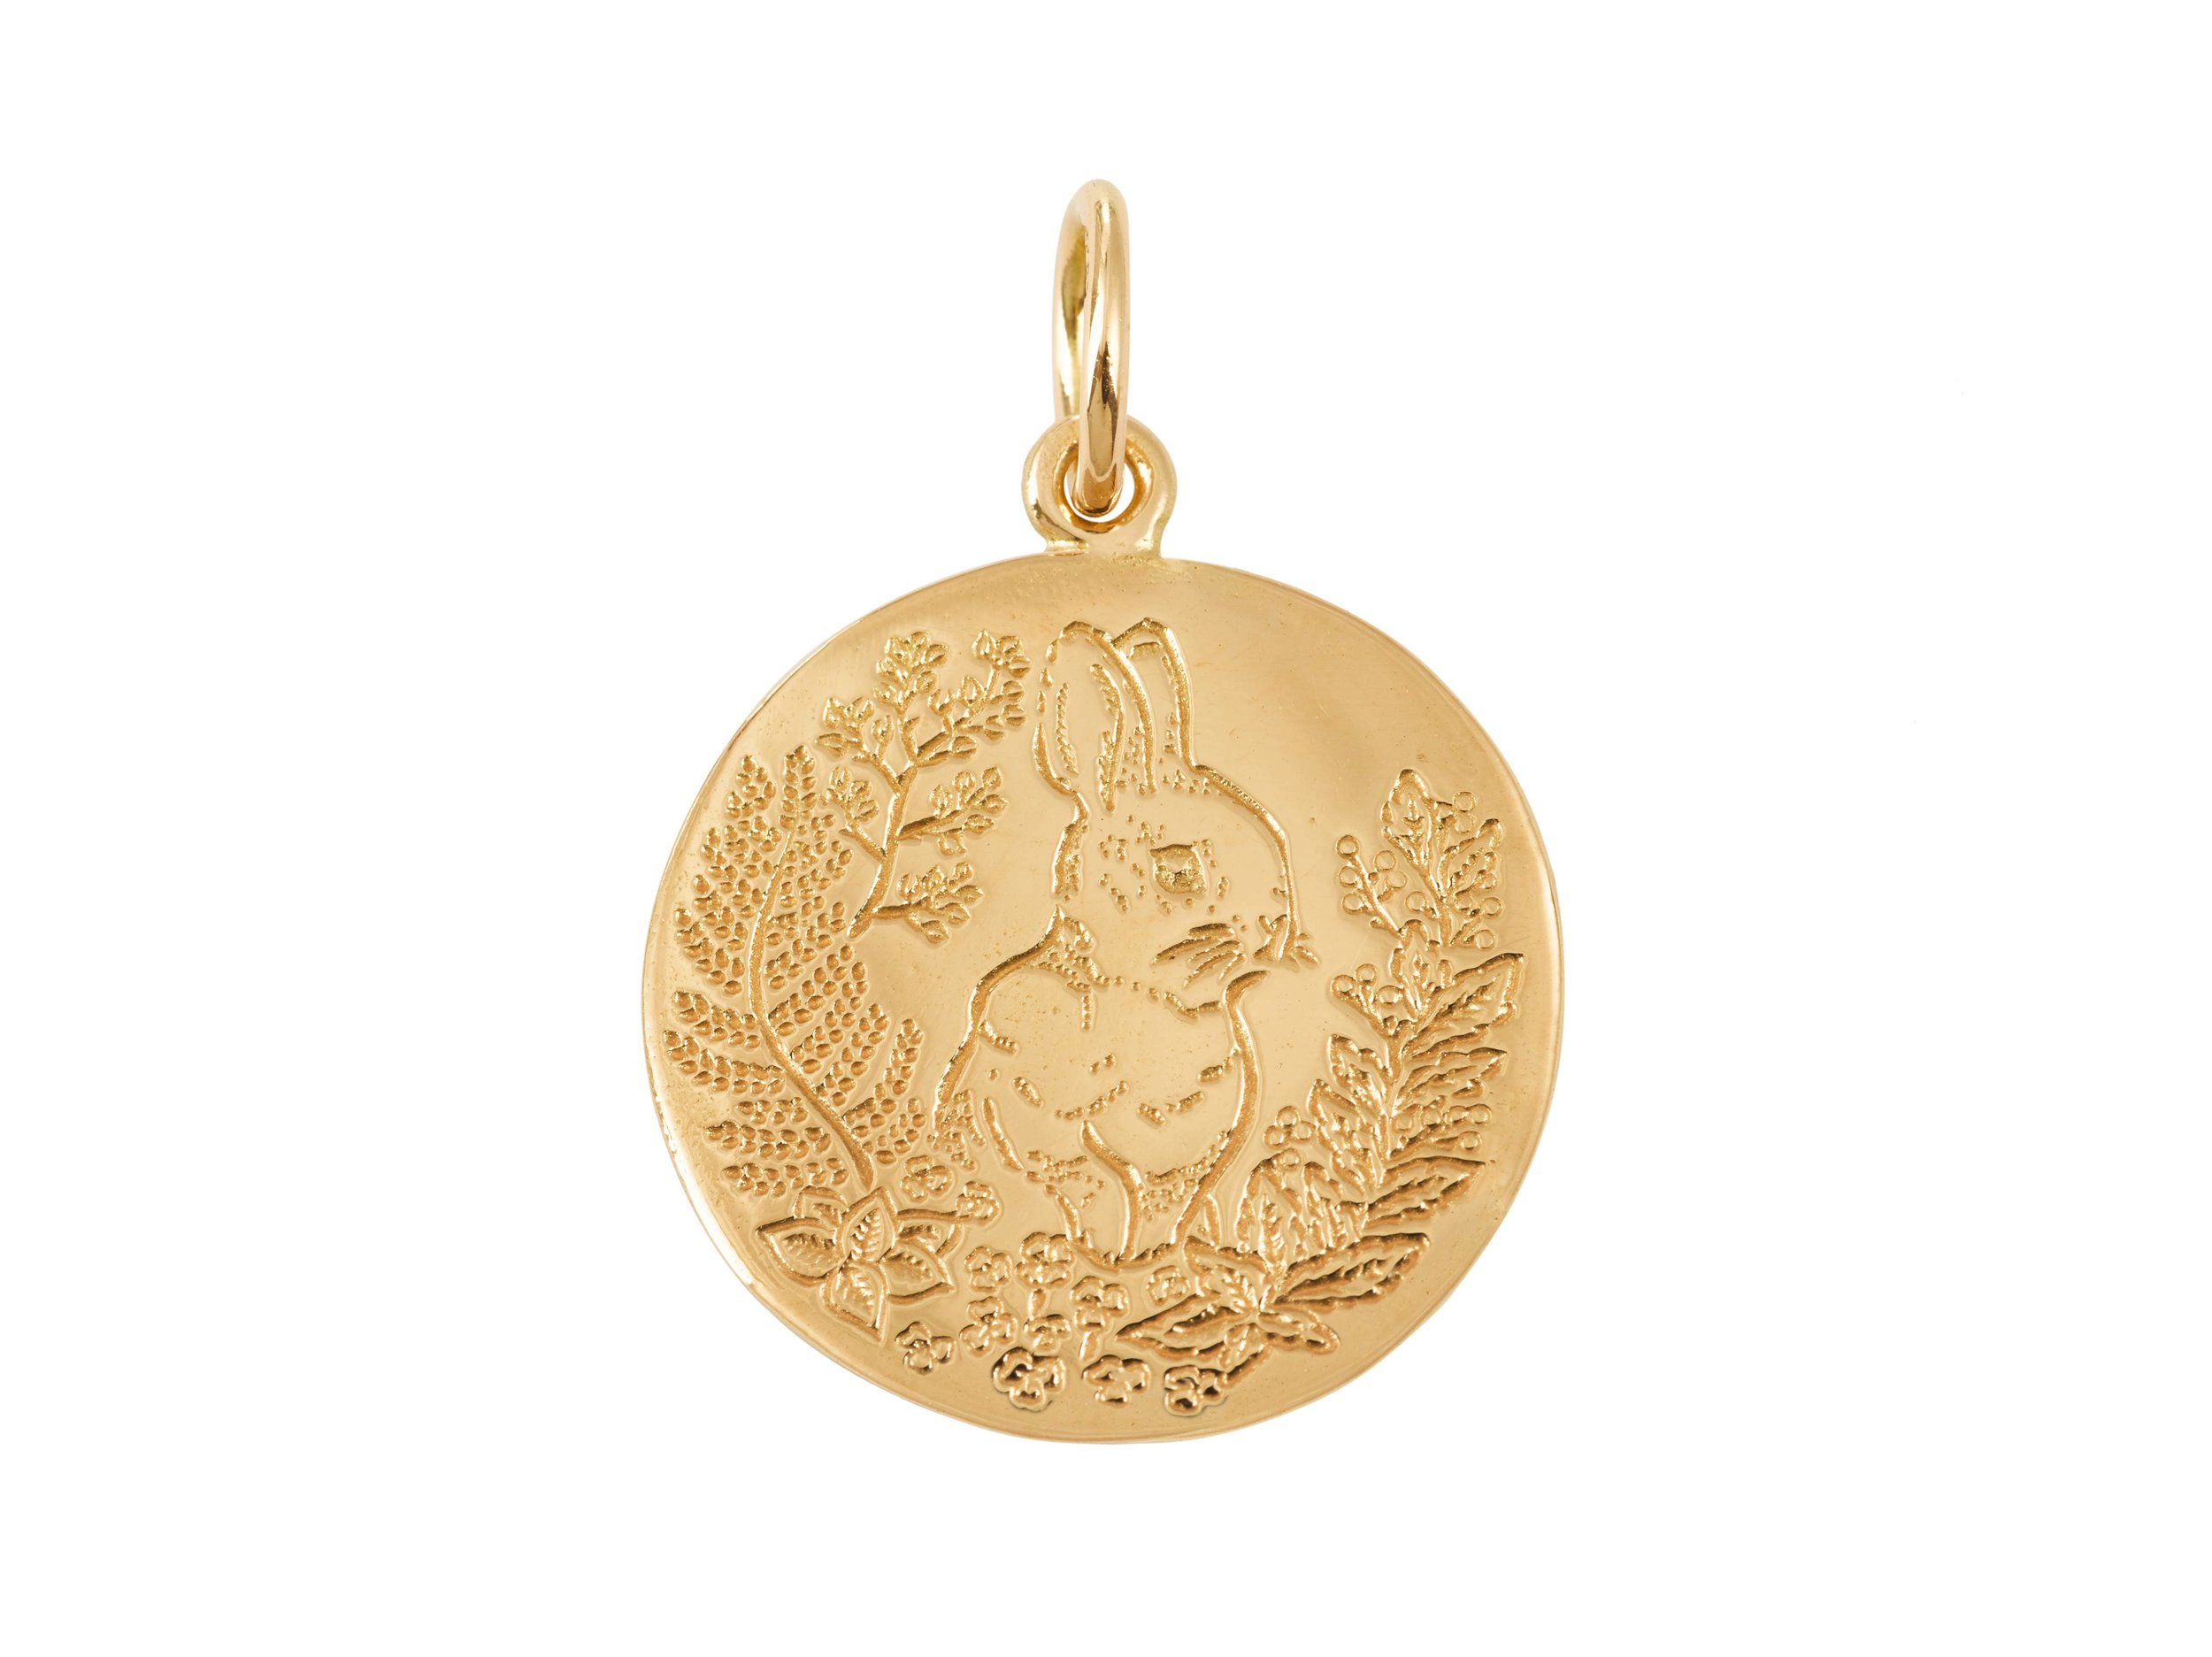 Marie-de-Beaucourt-x-Myrtille-Beck-gold-pendants1.jpg